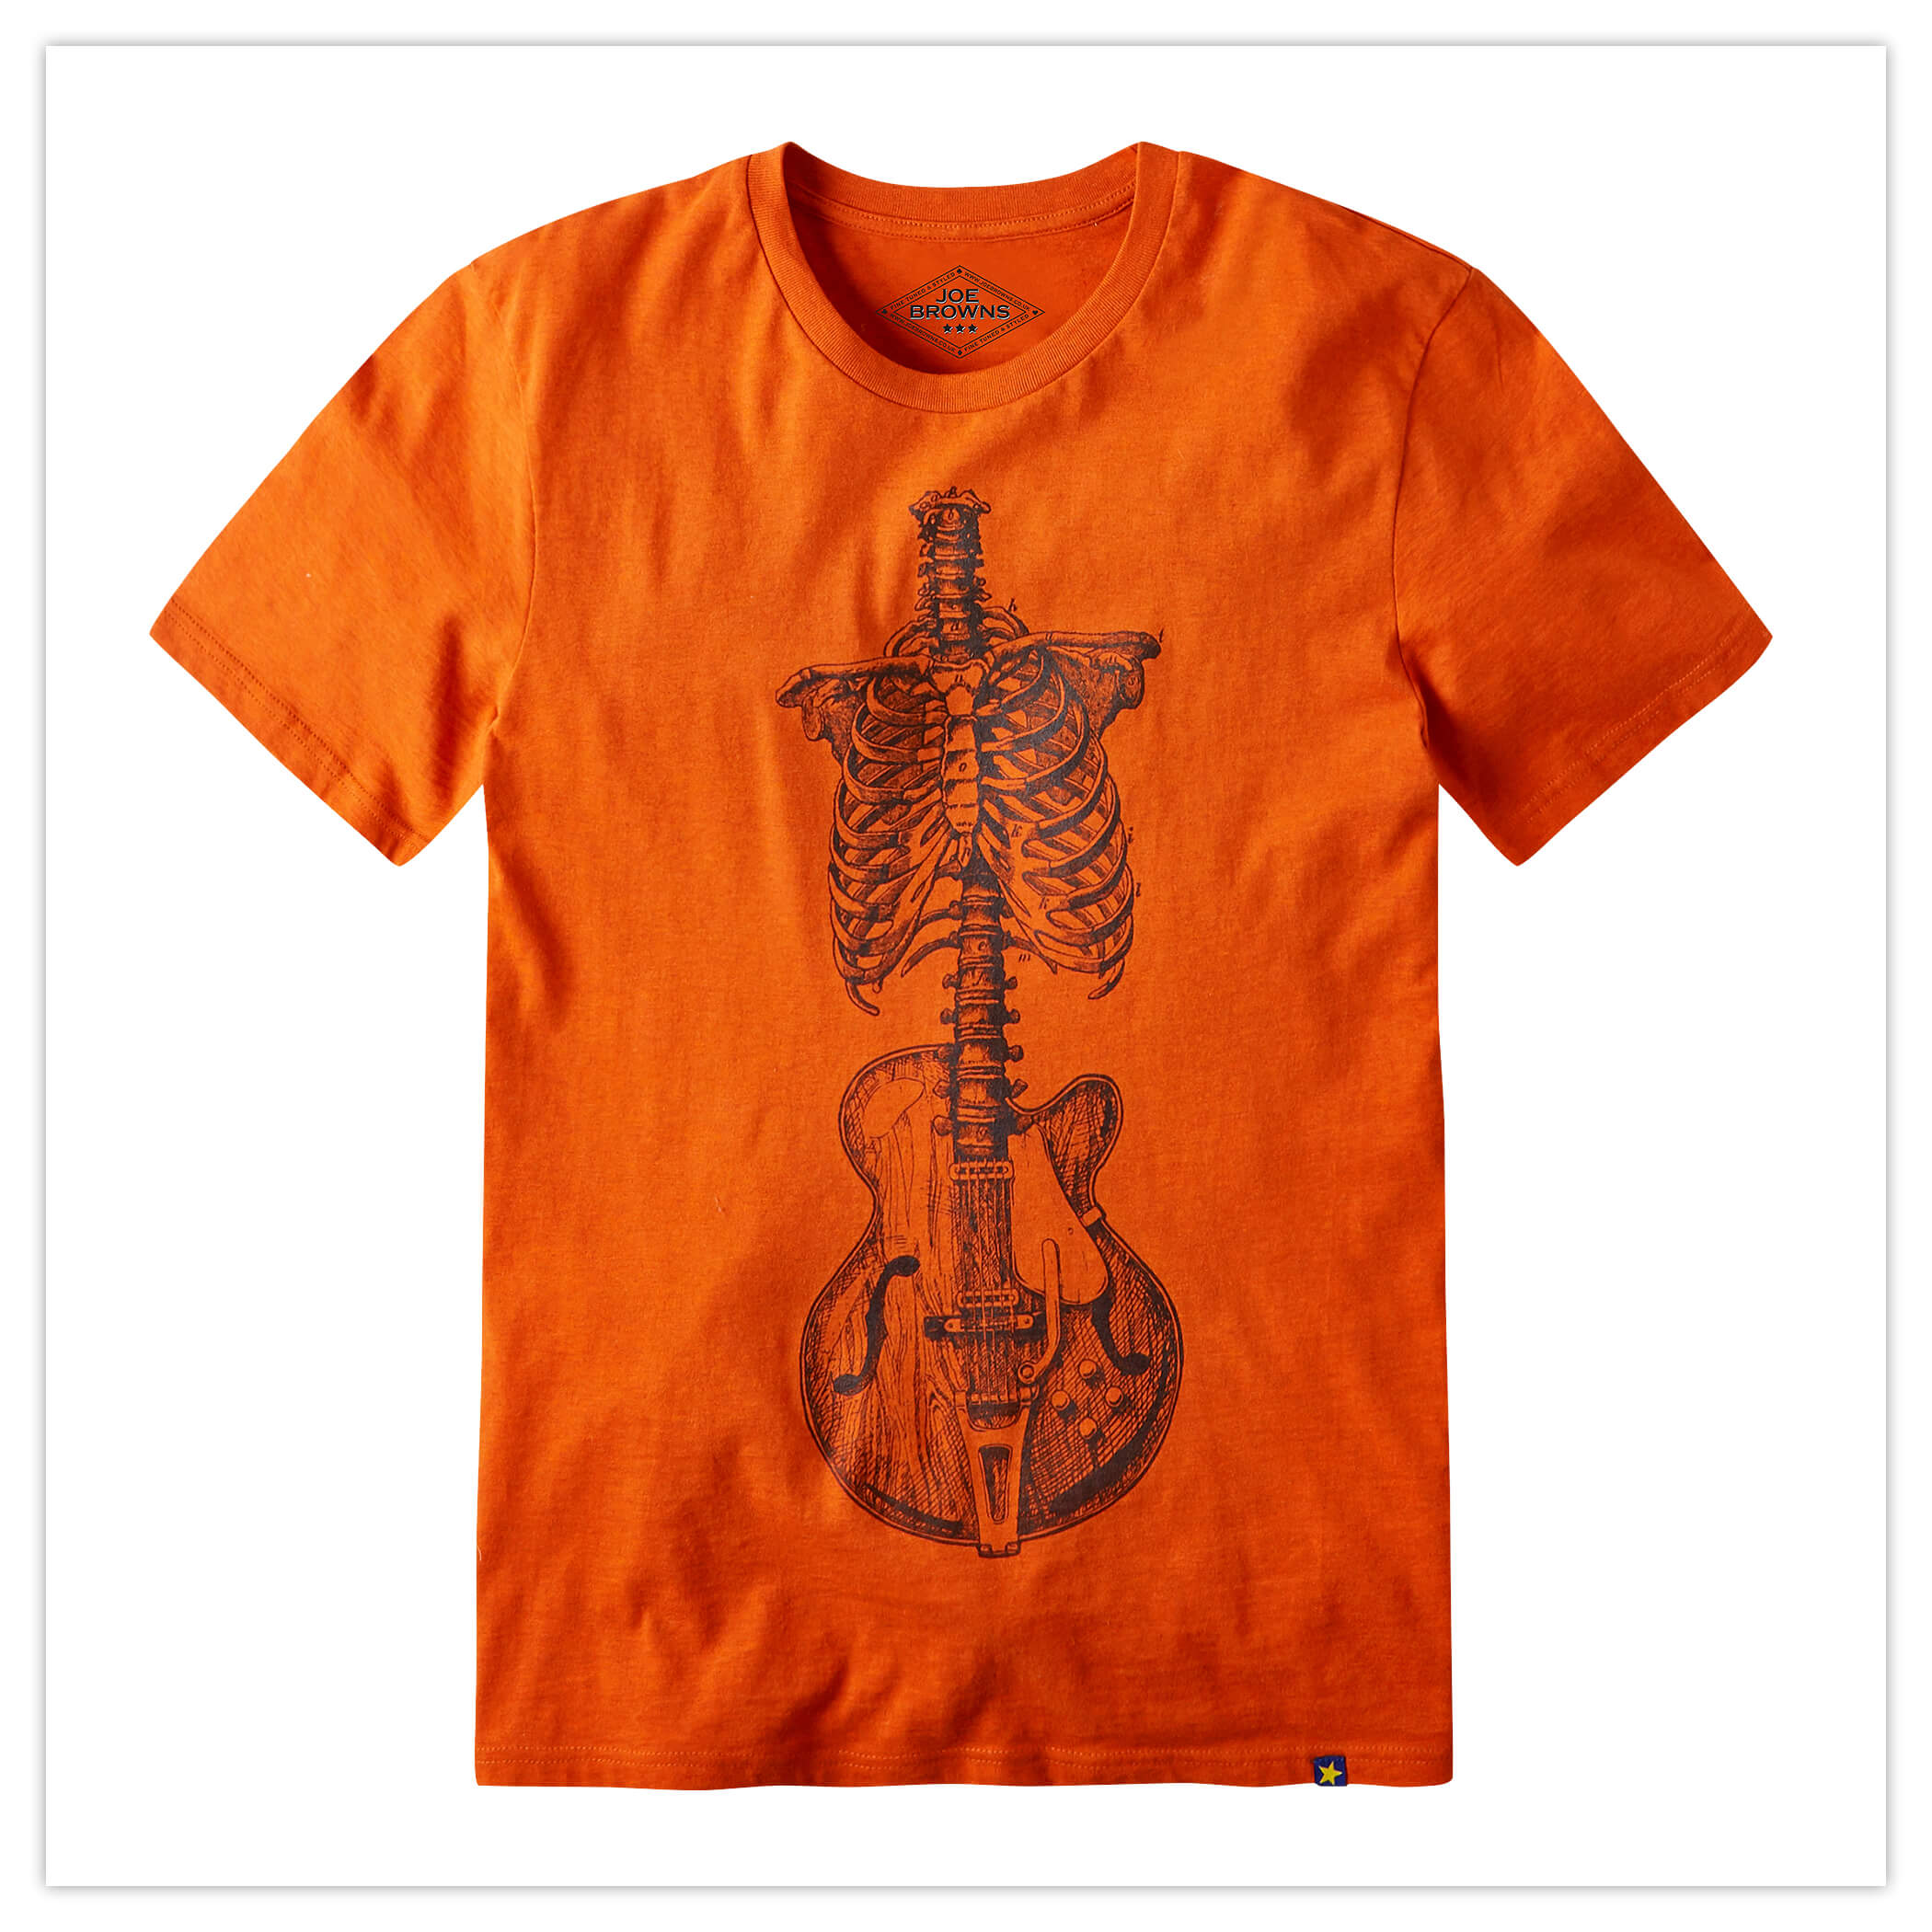 Joe Browns Bare Bones T-Shirt